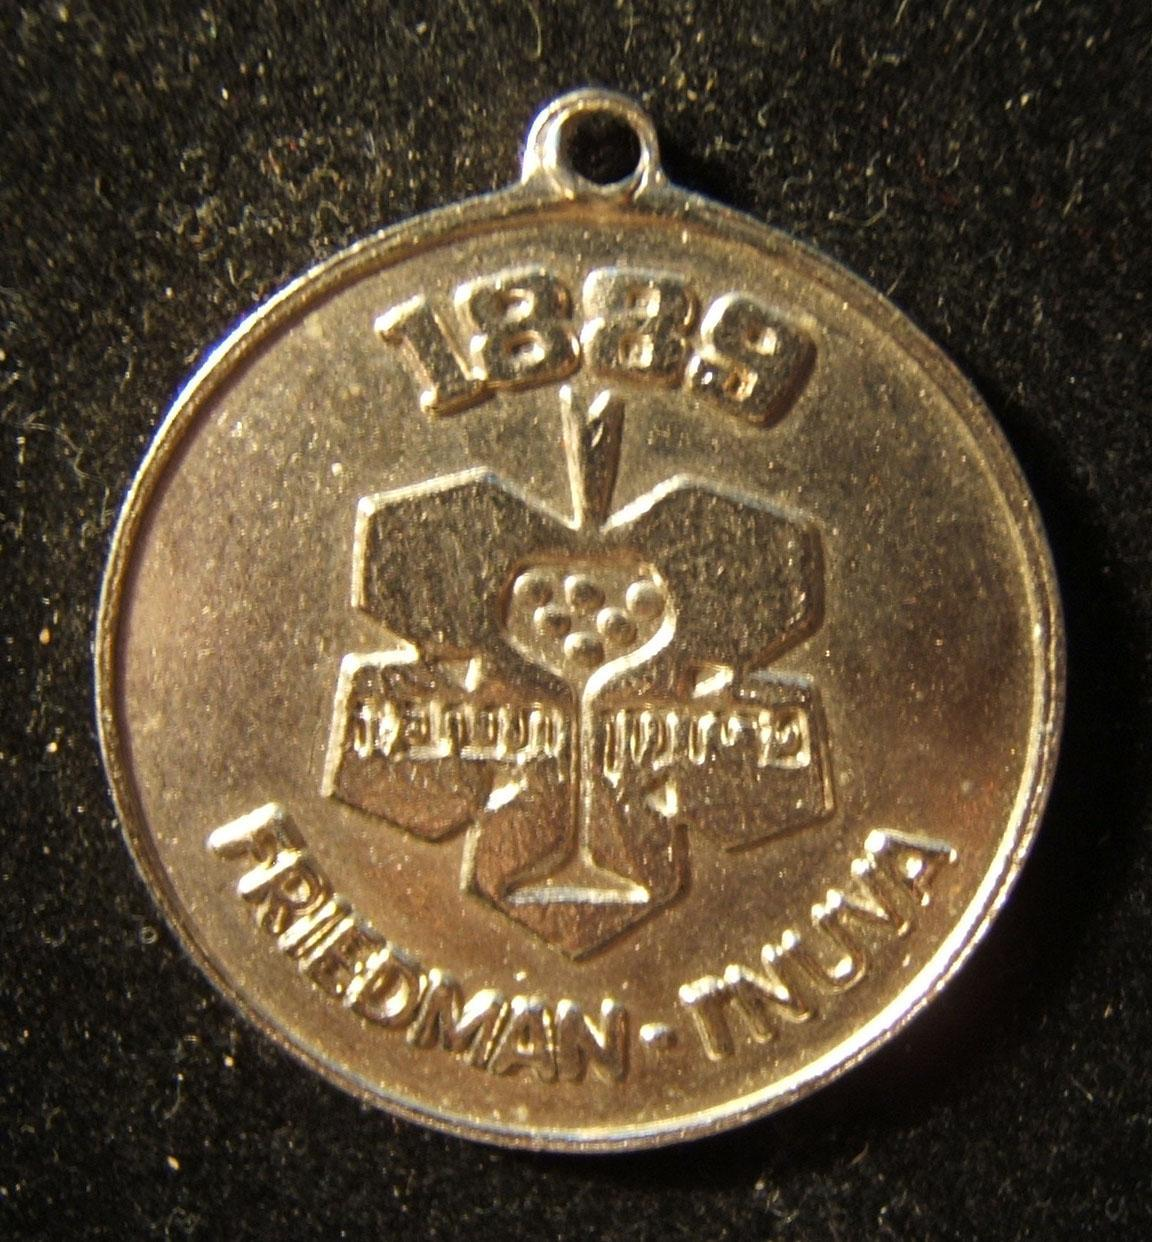 Israeli business token/tallion for Friedman-Tnuva dairy-winery, c.1964-71